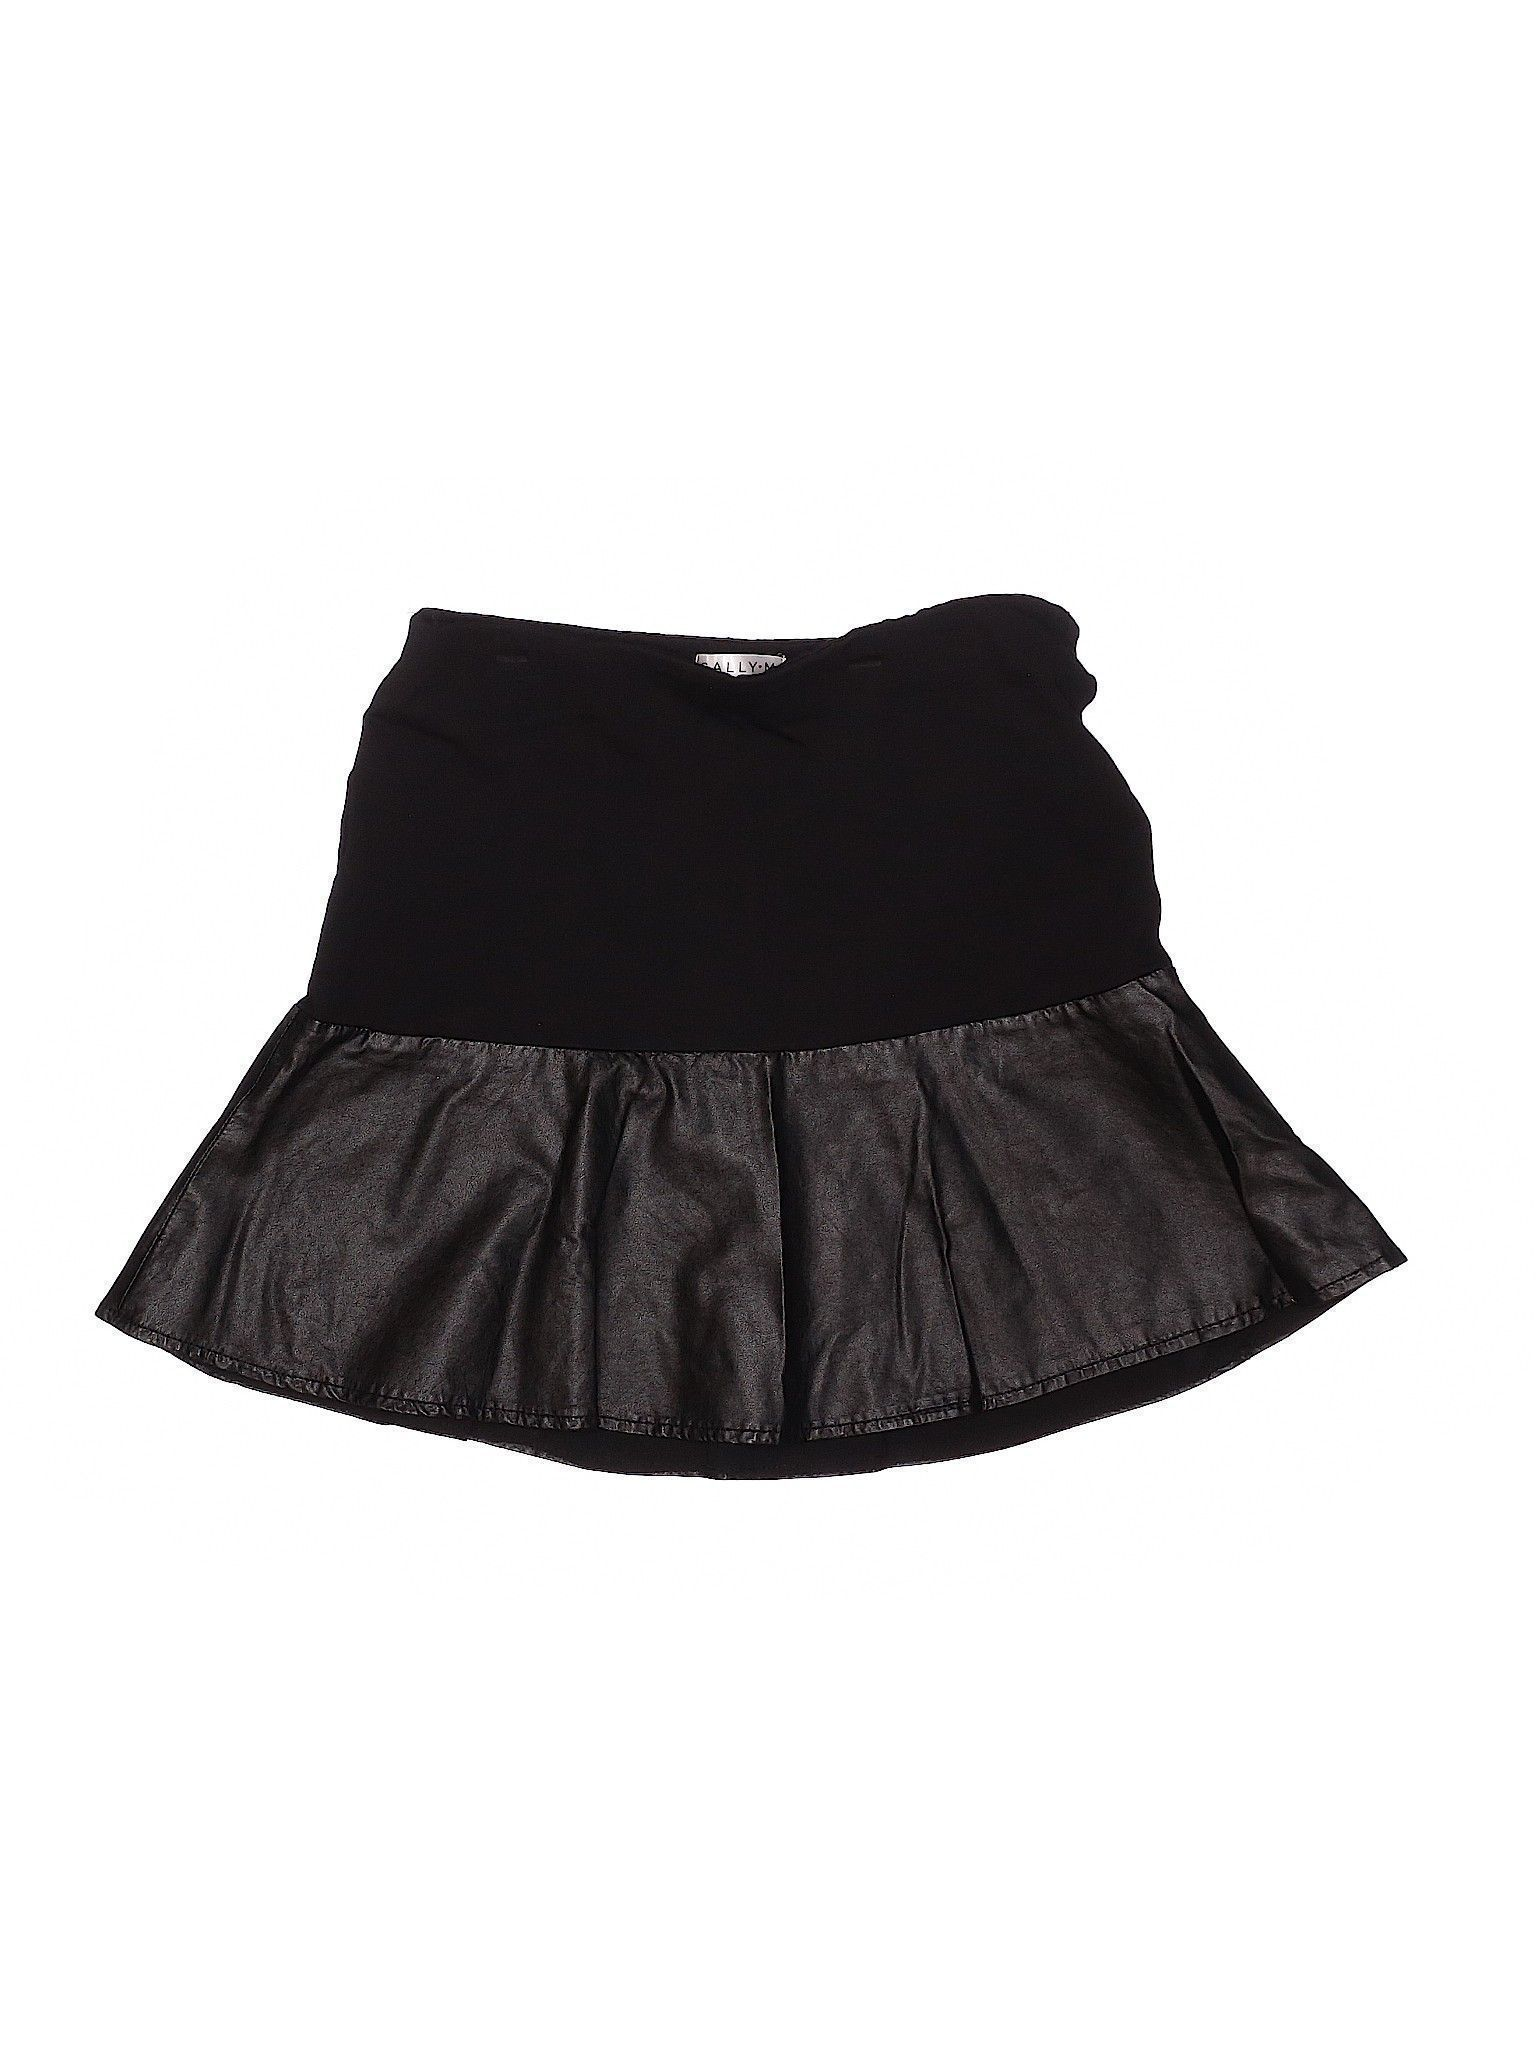 Sally Miller Skirt - 16: Black Girl's Skirts & Dresses - Size 14 #sallymiller Sally Miller Skirt - 16: Black Girl's Skirts & Dresses - Size 14 #sallymiller Sally Miller Skirt - 16: Black Girl's Skirts & Dresses - Size 14 #sallymiller Sally Miller Skirt - 16: Black Girl's Skirts & Dresses - Size 14 #sallymiller Sally Miller Skirt - 16: Black Girl's Skirts & Dresses - Size 14 #sallymiller Sally Miller Skirt - 16: Black Girl's Skirts & Dresses - Size 14 #sallymiller Sally Miller Skirt - 16: Black G #sallymiller